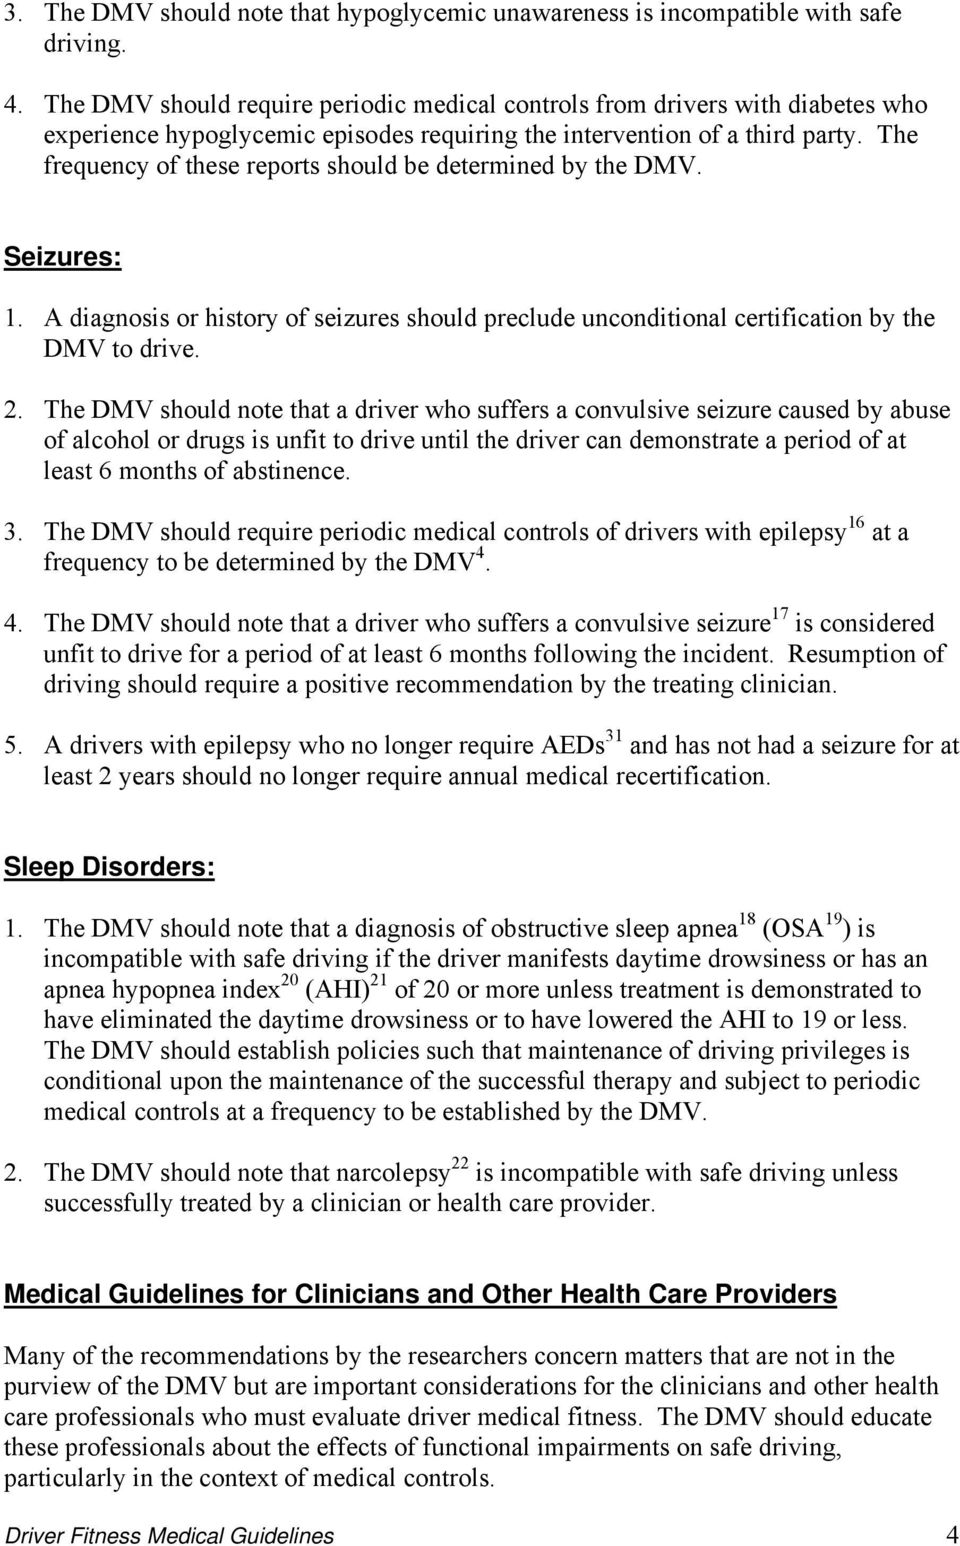 The frequency of these reports should be determined by the DMV. Seizures: 1. A diagnosis or history of seizures should preclude unconditional certification by the DMV to drive. 2.